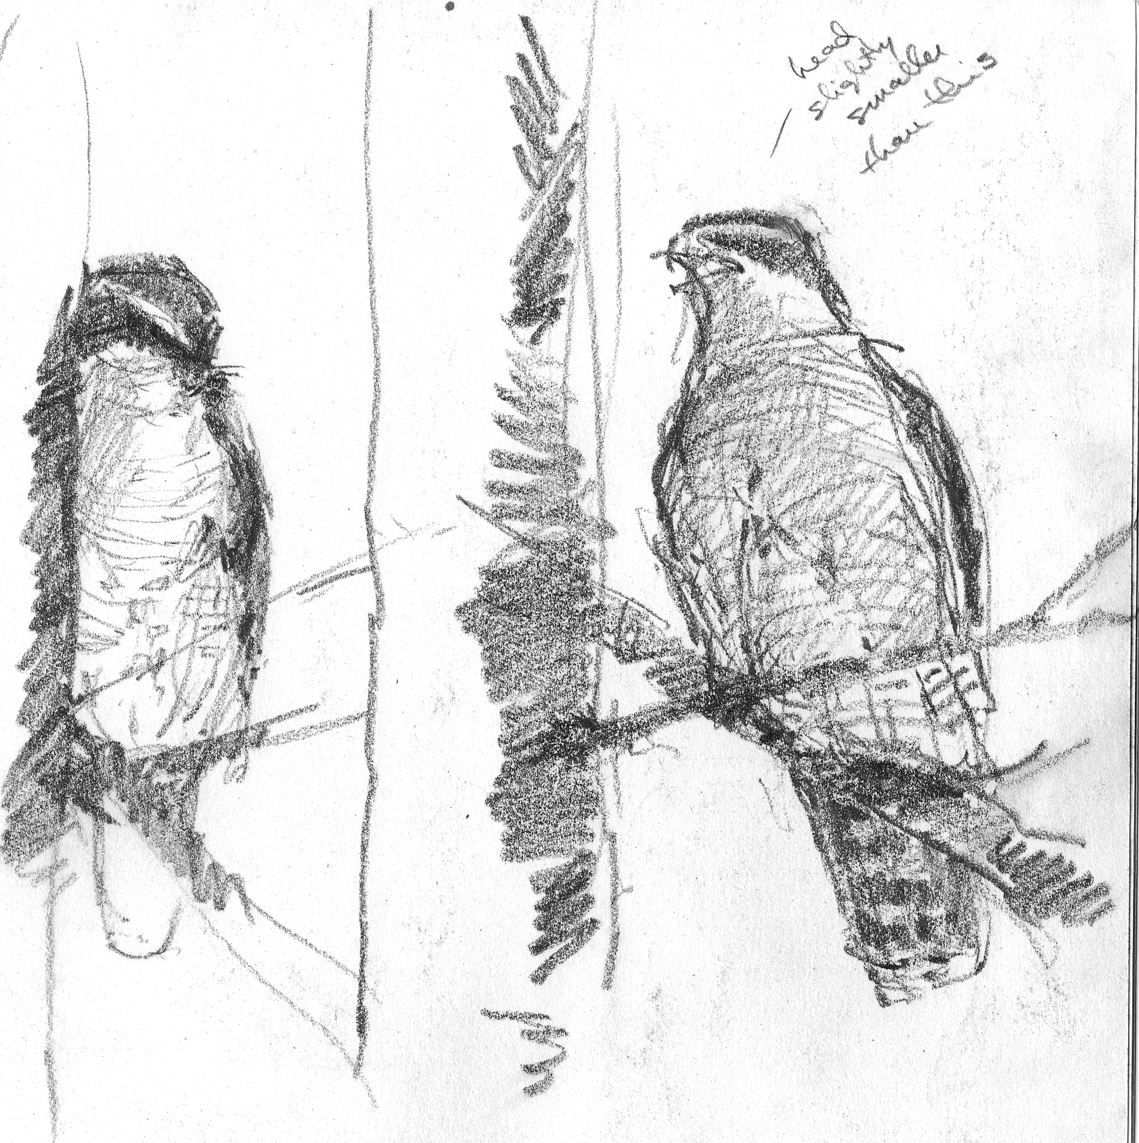 New England Sketchbook 2: Critters